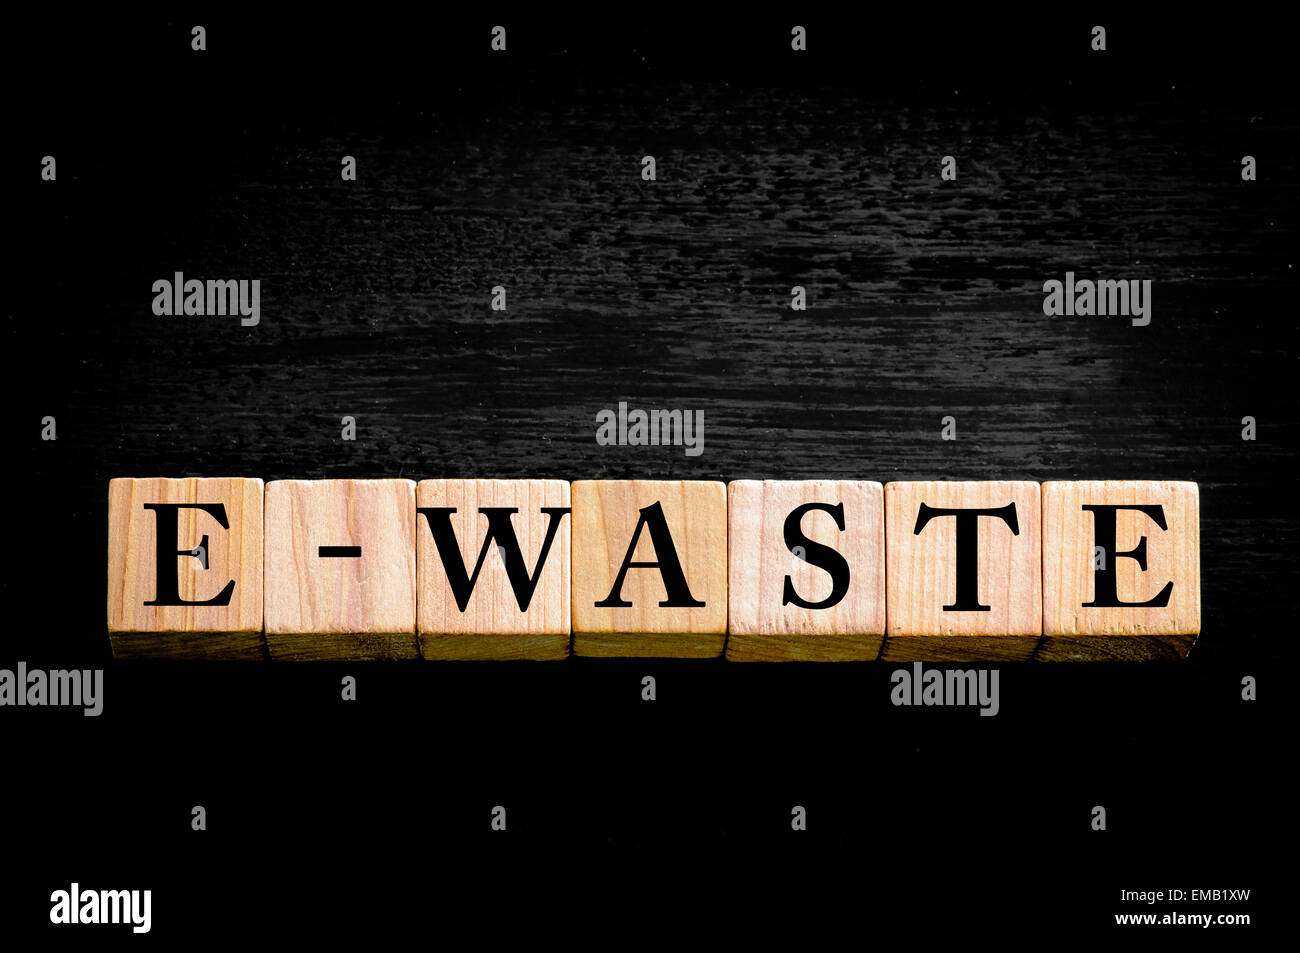 E waste background images - Stock Photo Word E Waste Standing For Electronic Waste Wooden Small Cubes With Letters Isolated On Black Background With Copy Space Available